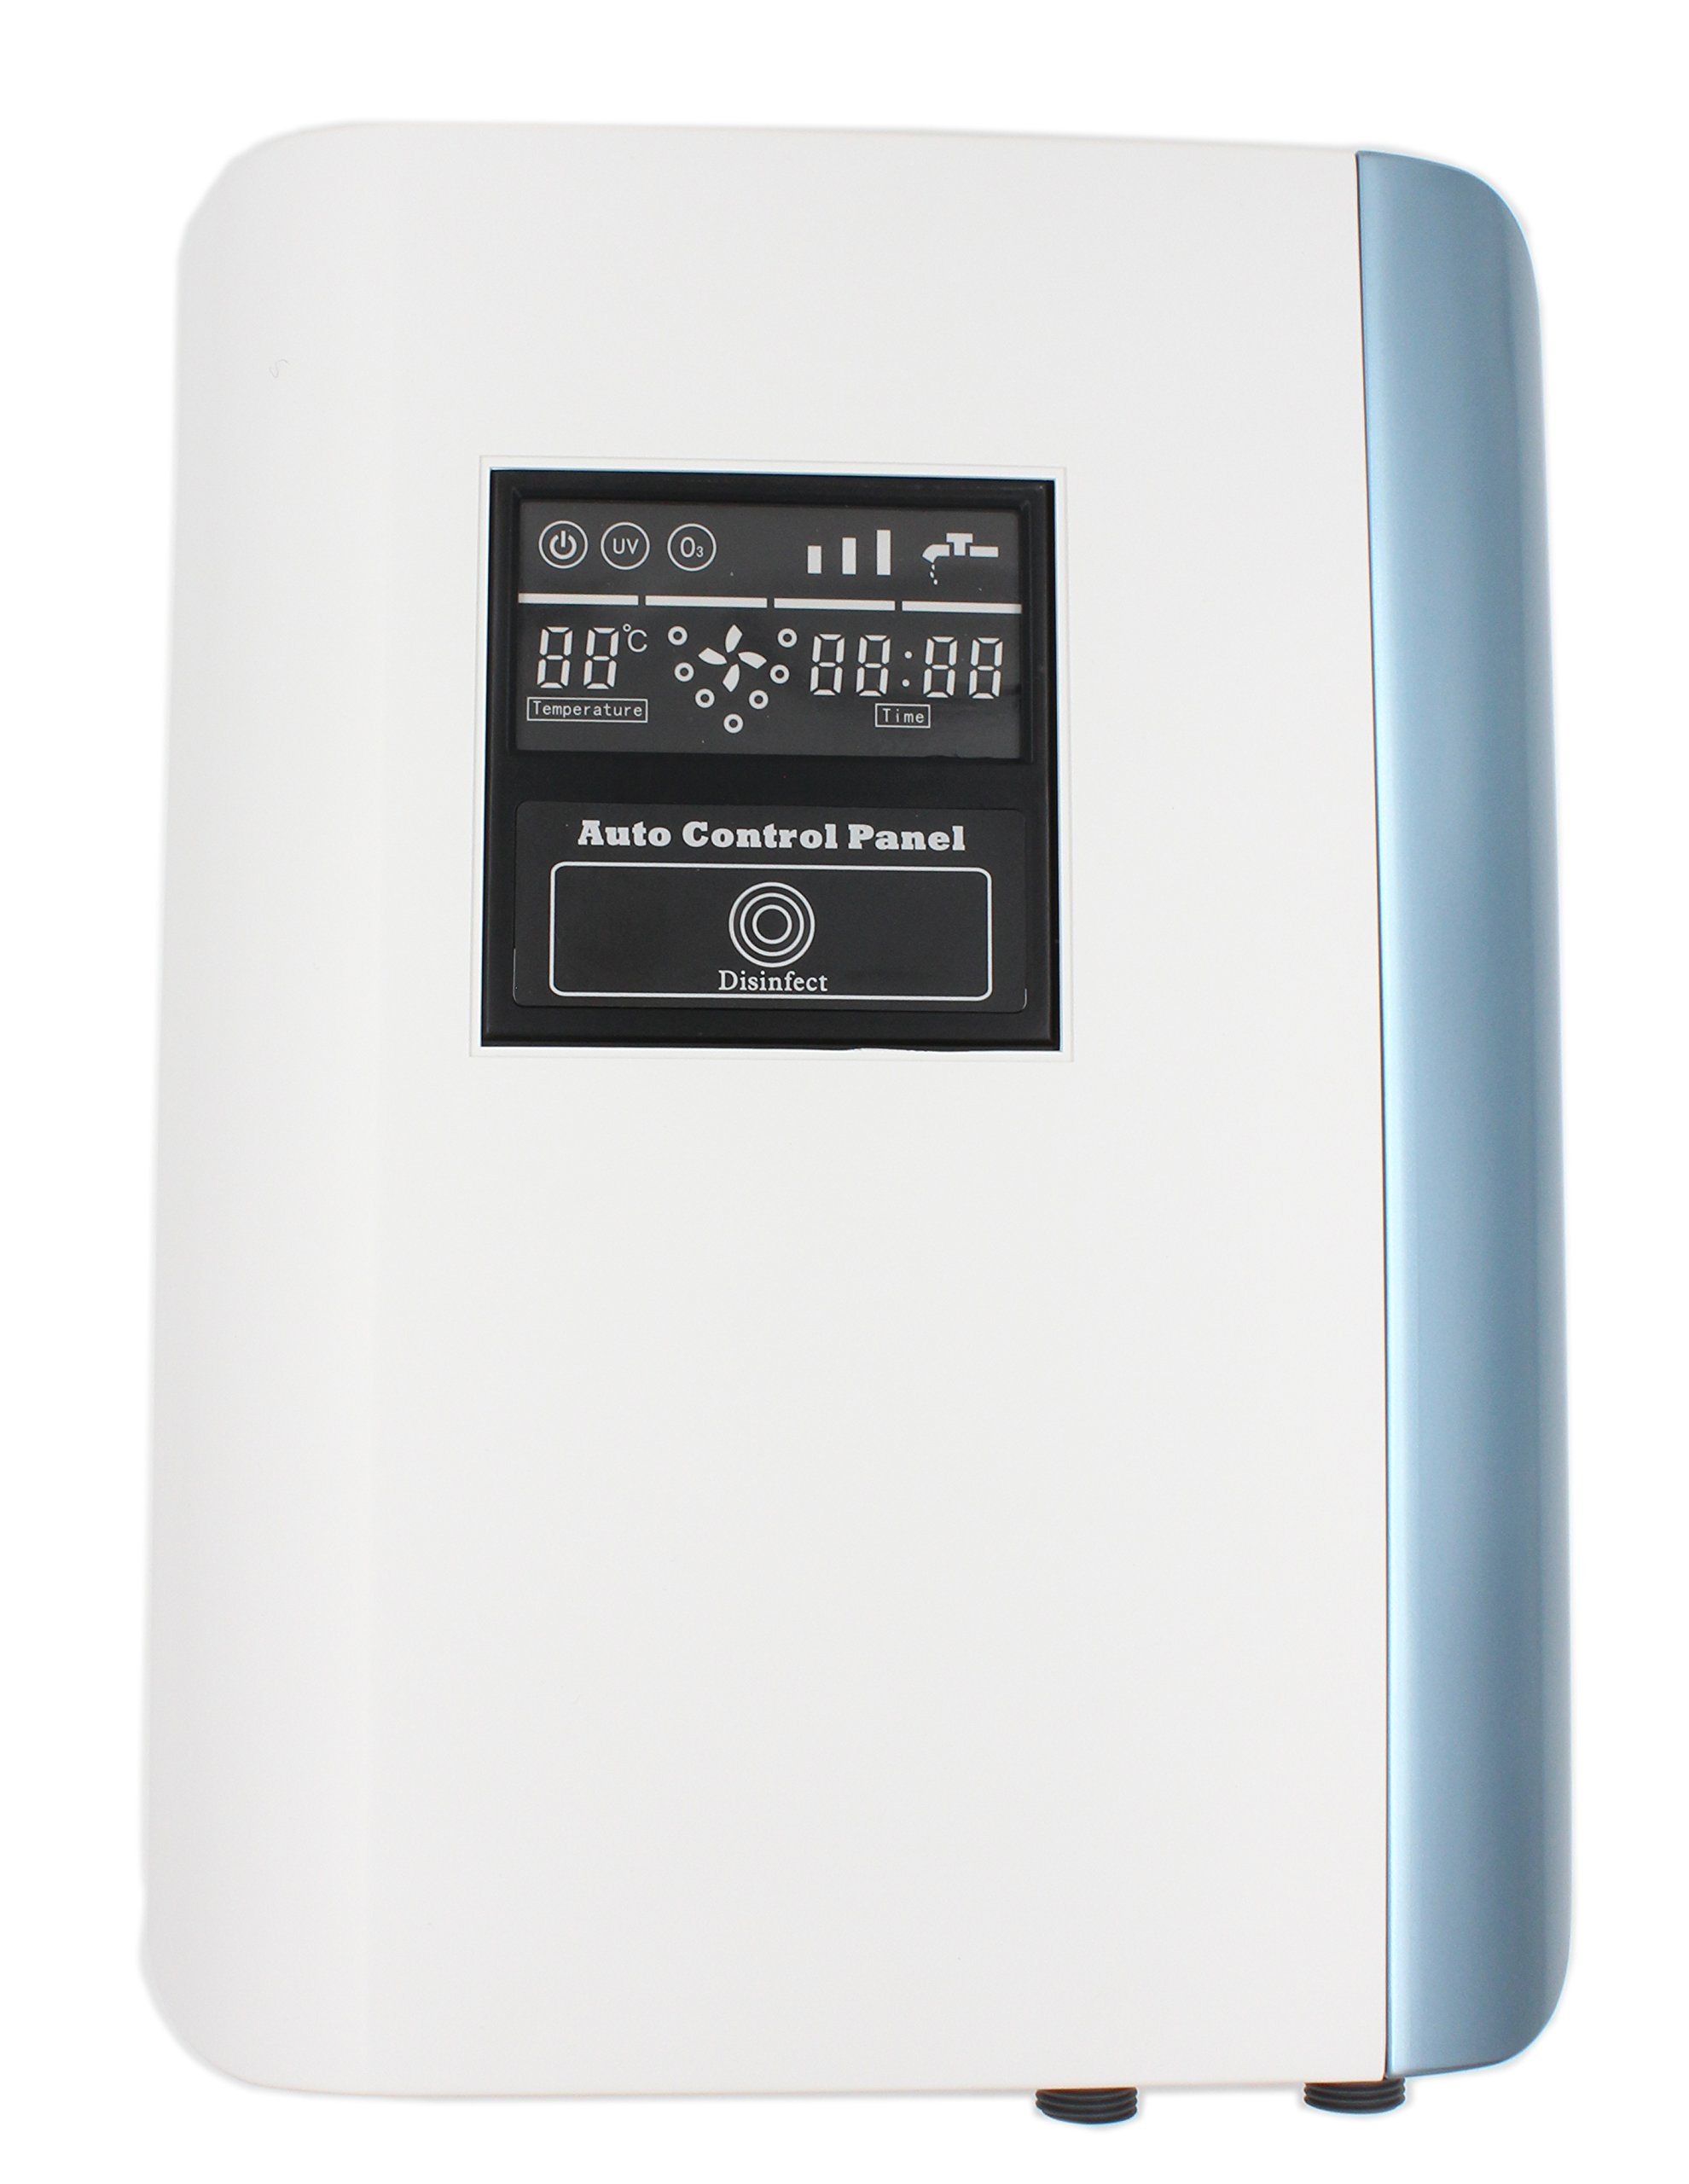 VOTOMO Household Ozone Water Purifier with German Pantent for Residential Purpose Drinking Water Vegetables Fruits food cleaning body care laundry